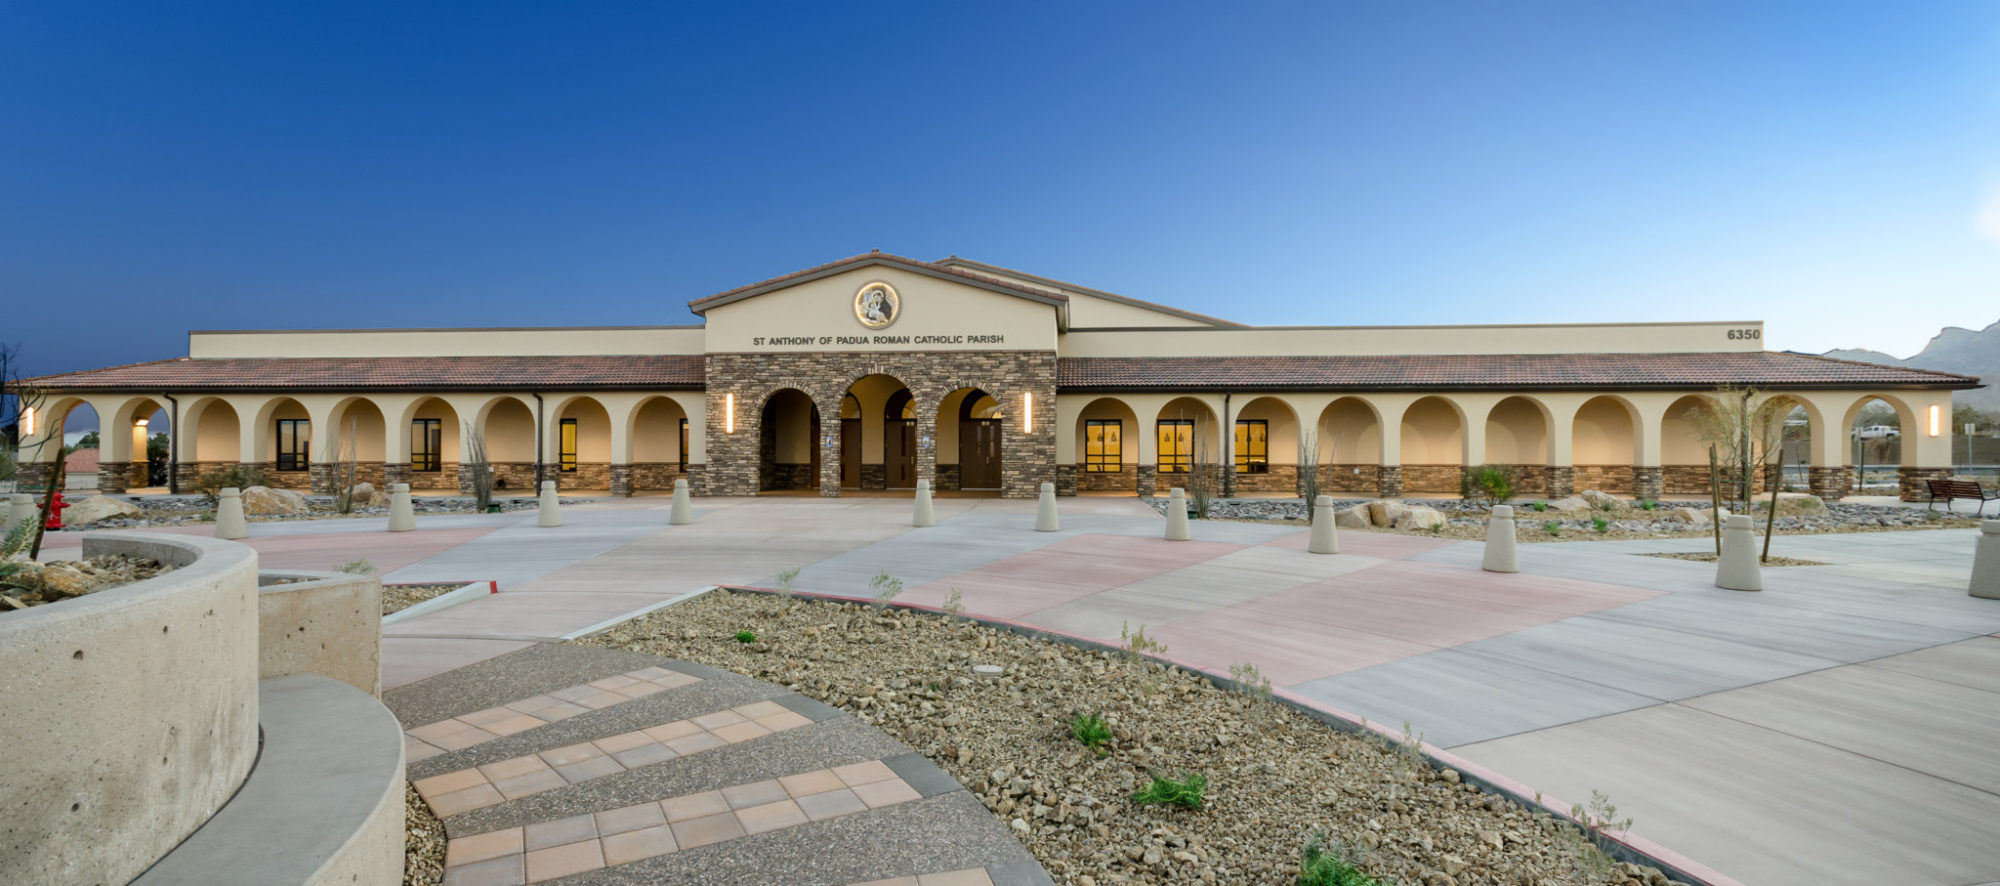 The front view of the St. Anthony of Padua Parish Hall, master plan and design by LGA Architecture.